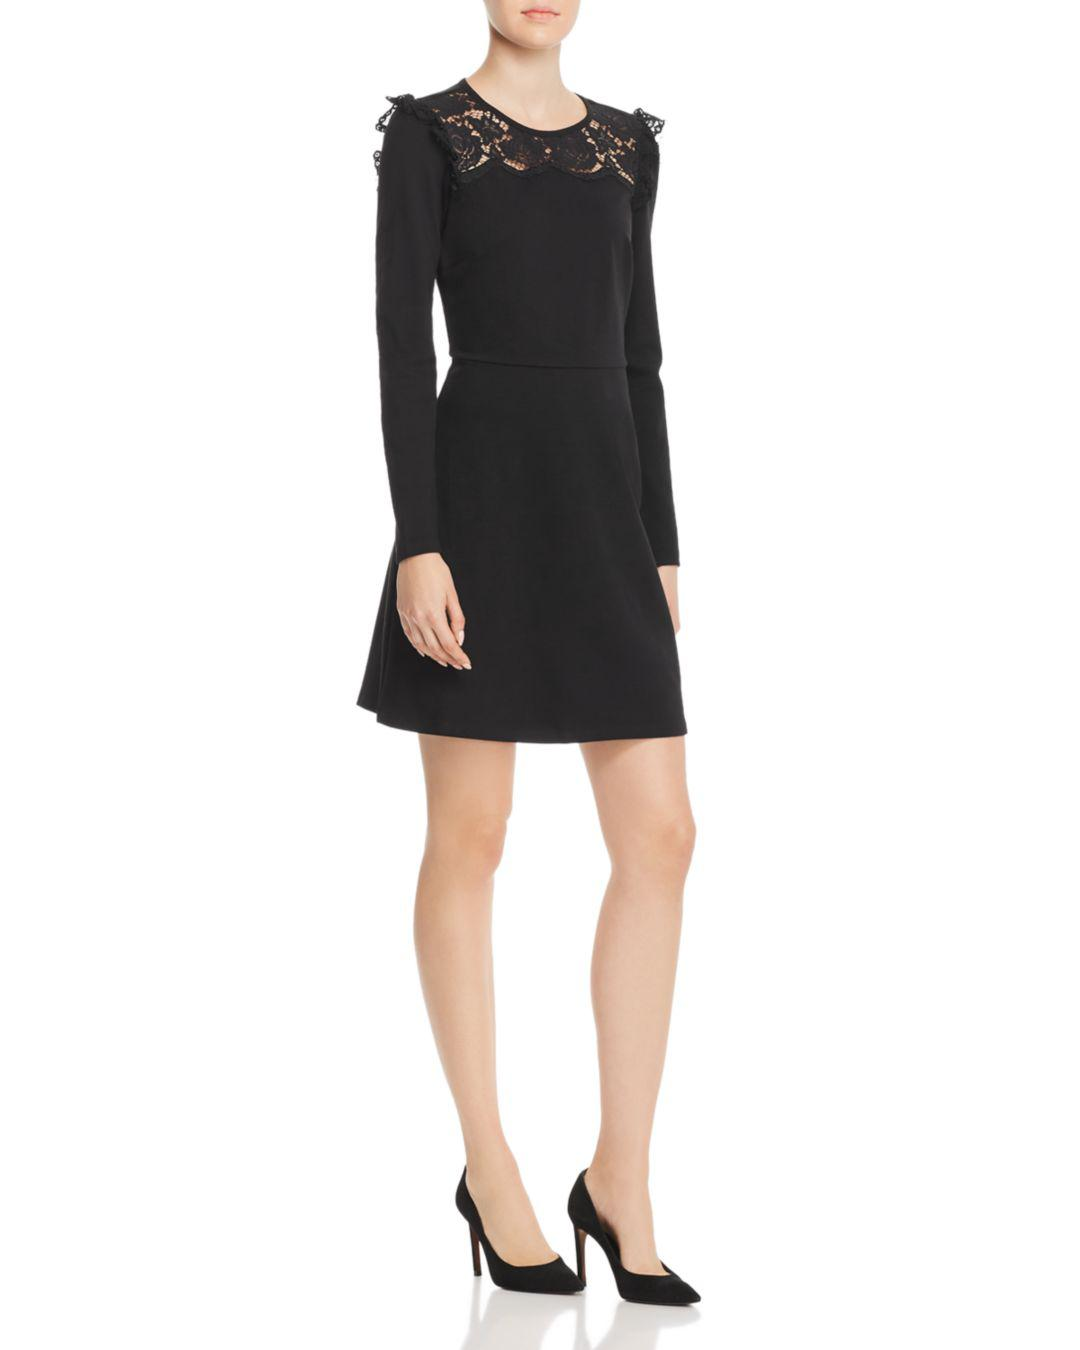 9fb2c9c8af Kate Spade Lace Yoke Ponte Dress in Black - Lyst